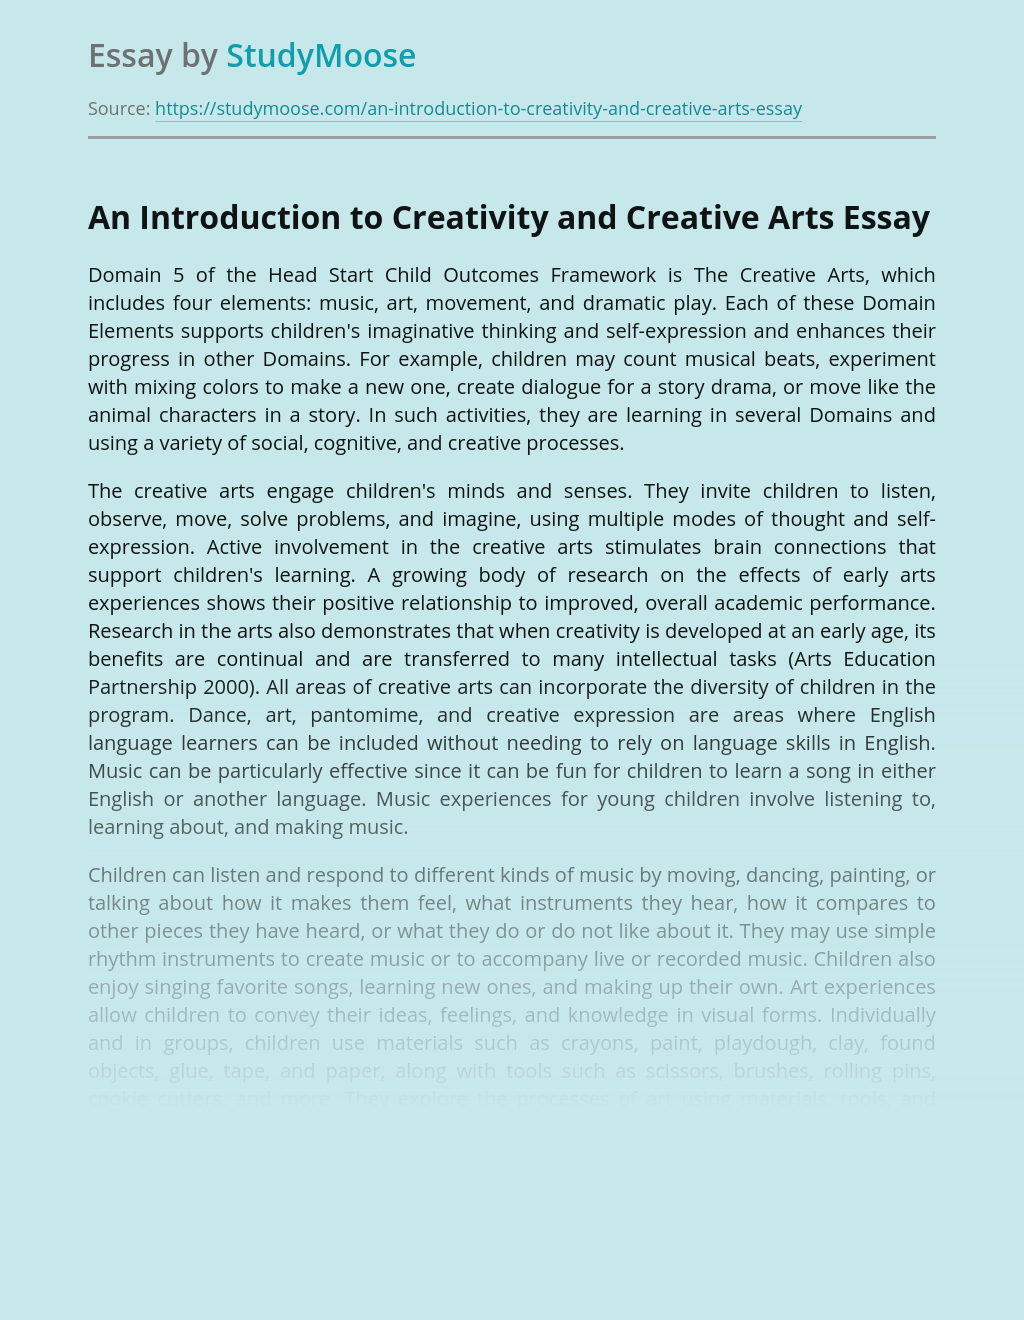 An Introduction to Creativity and Creative Arts